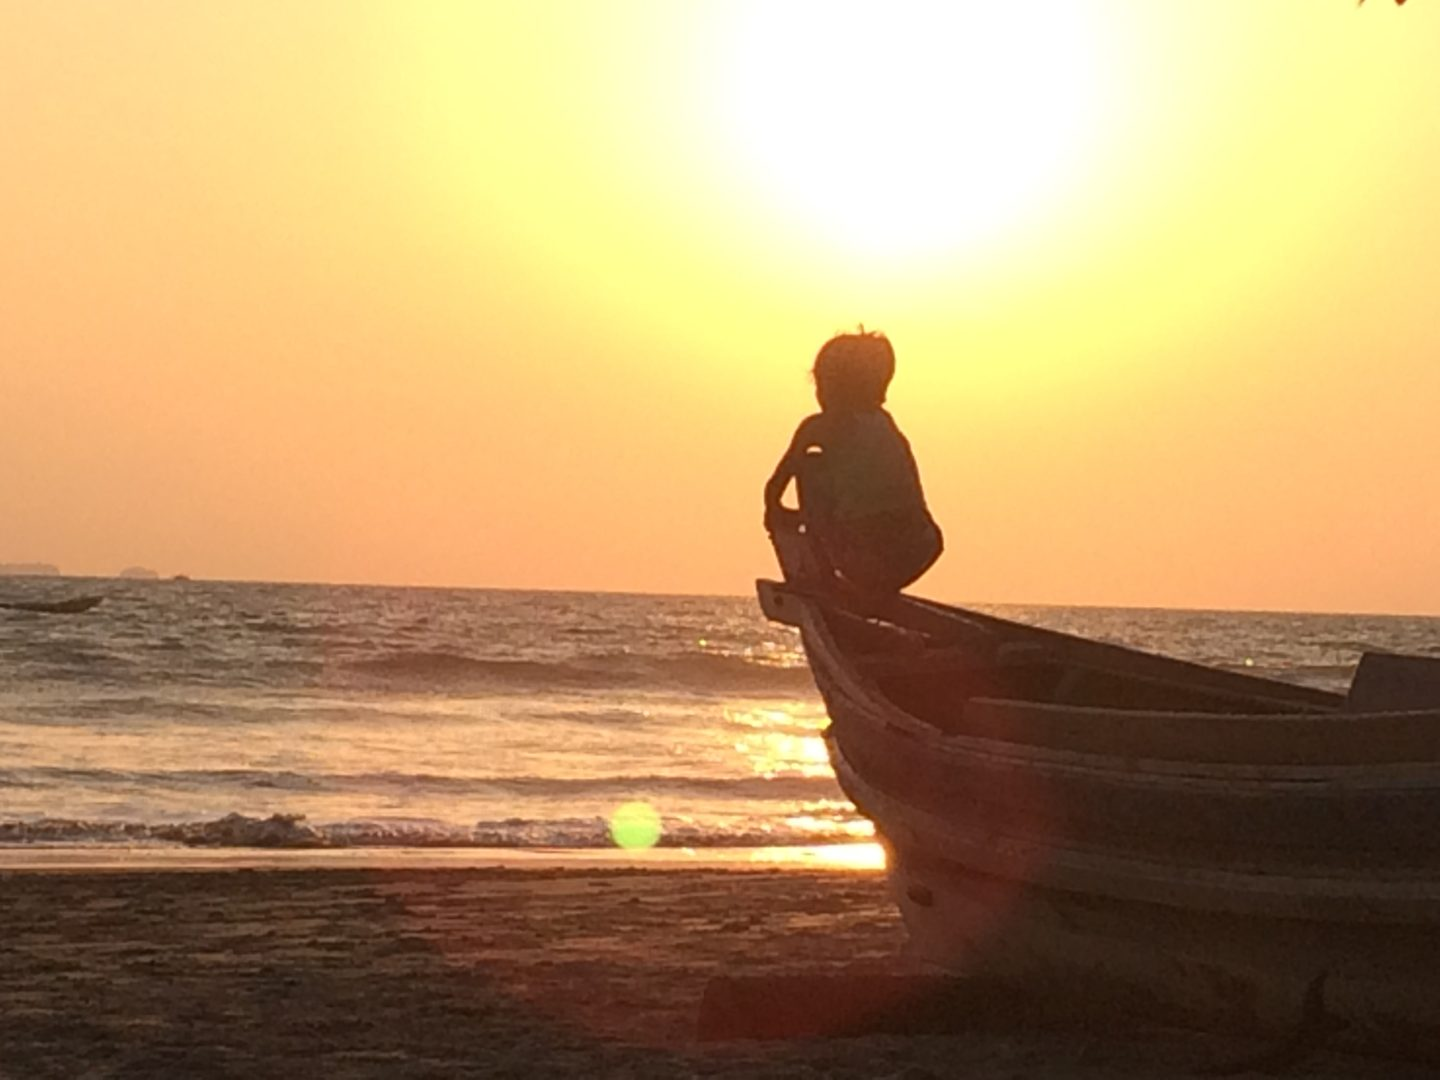 das ist der alternative Text